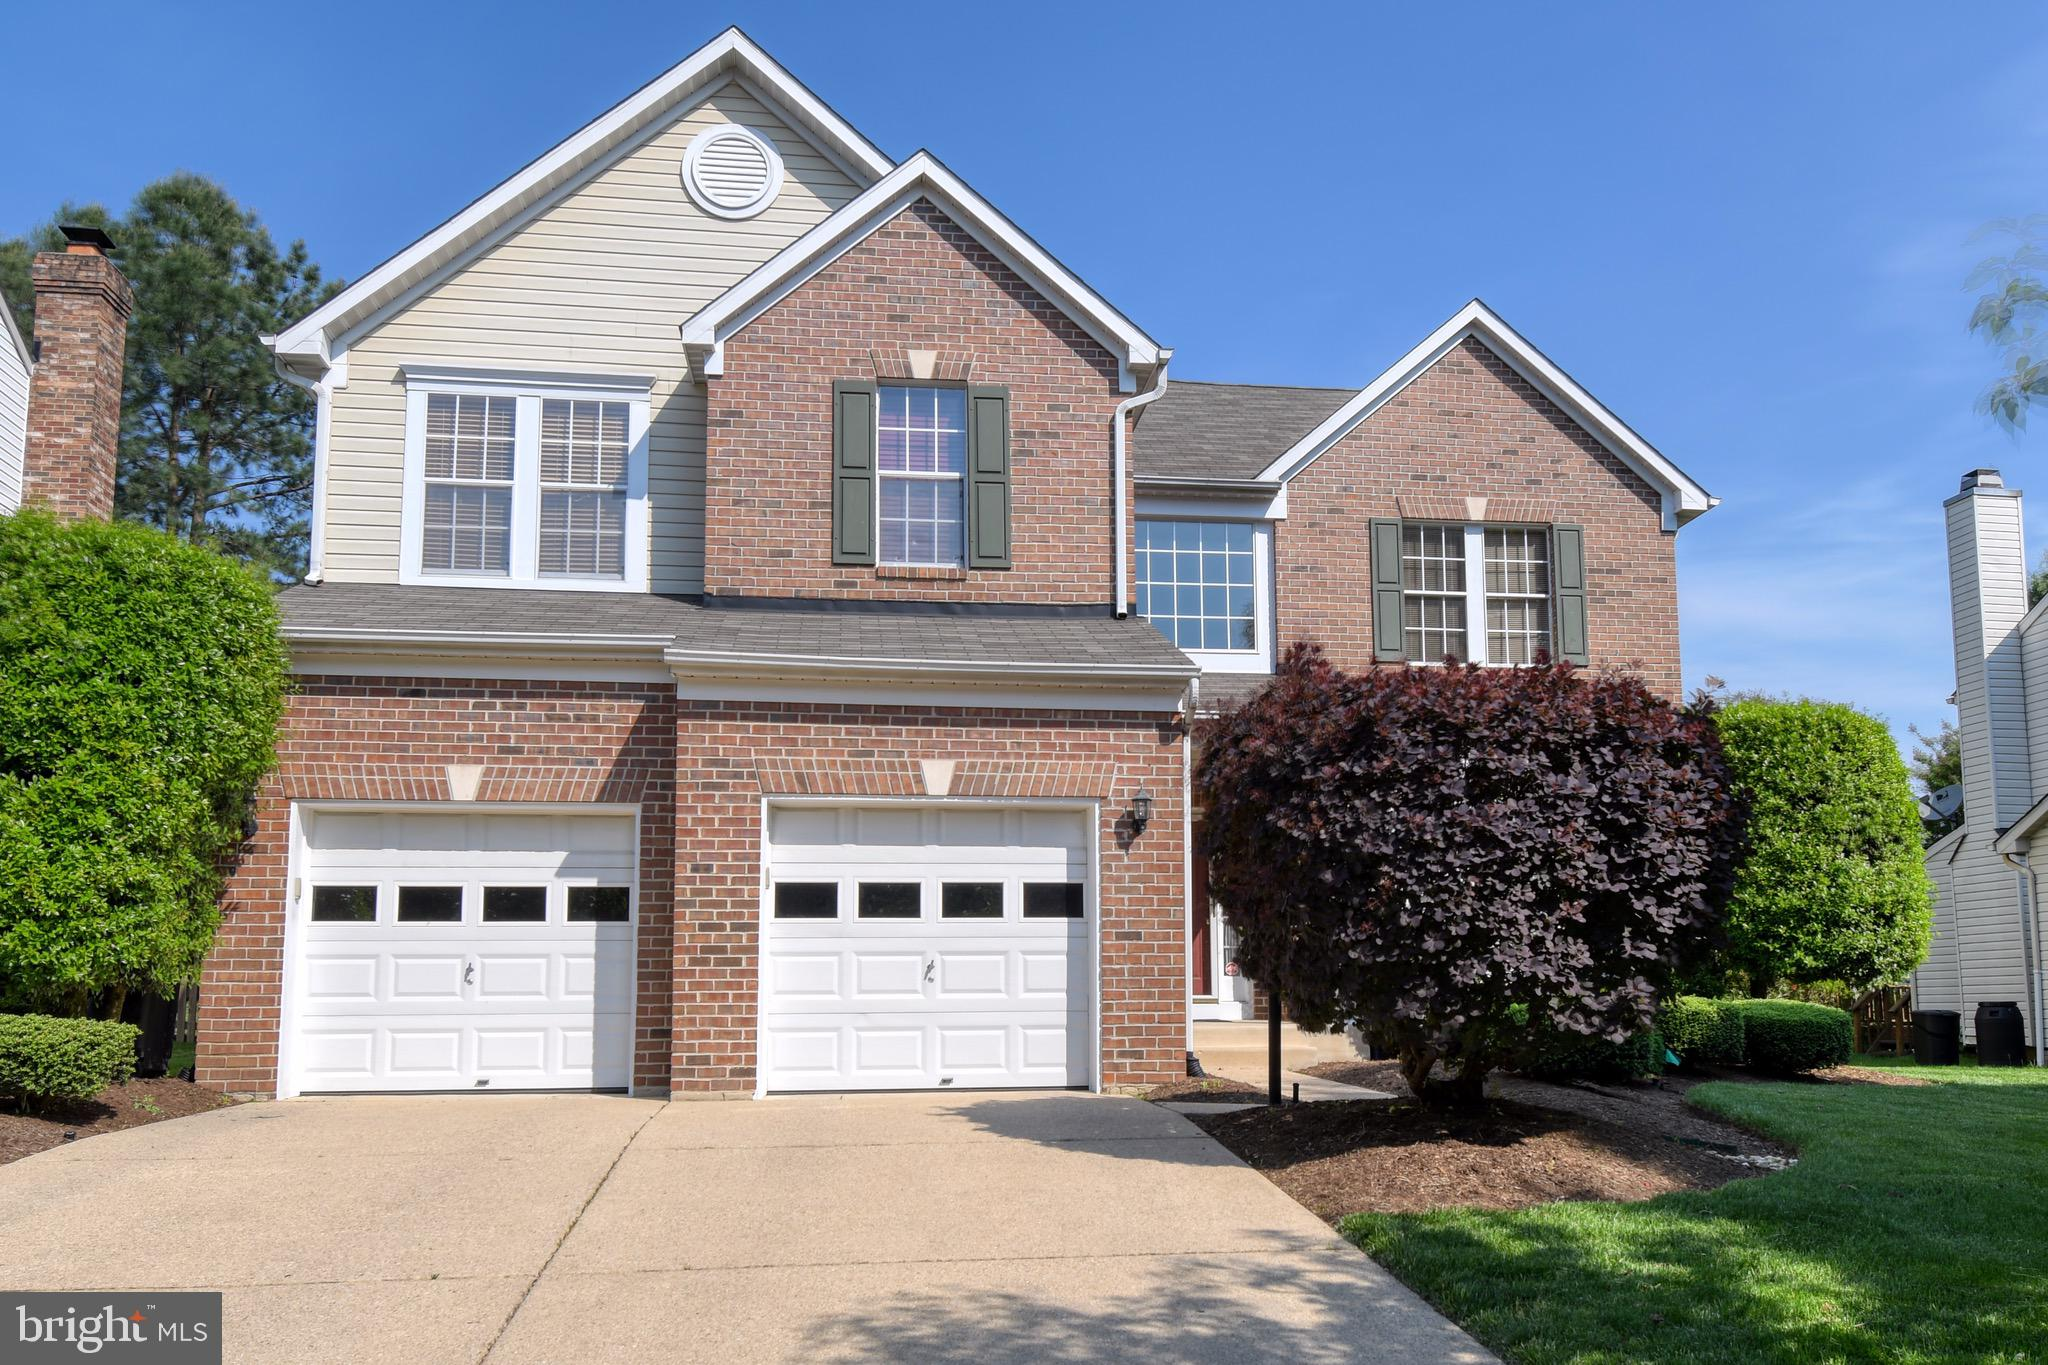 2802 KLEIN COURT, CROFTON, MD 21114